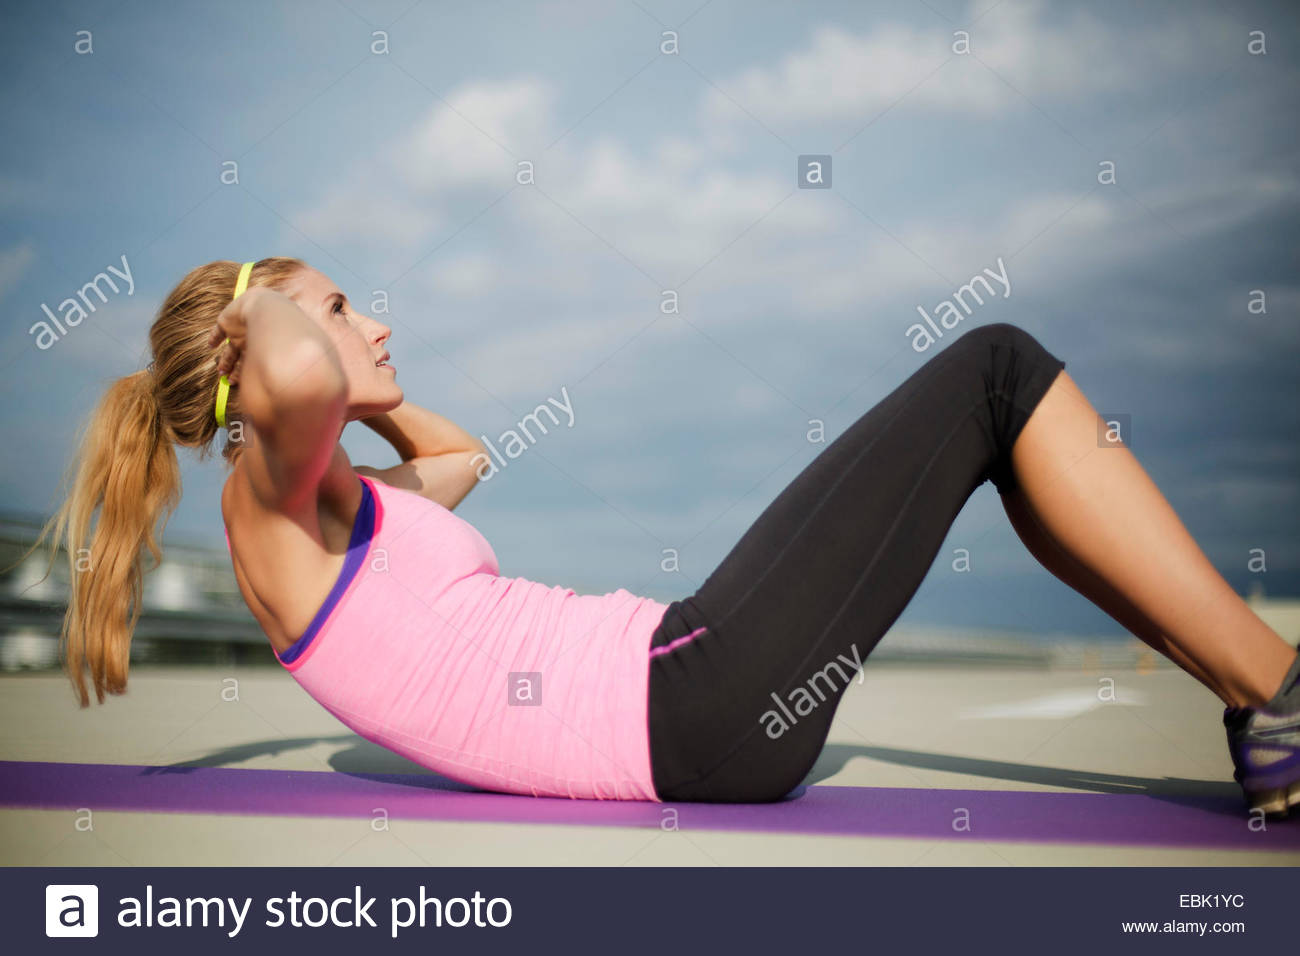 Young woman doing sit ups Photo Stock